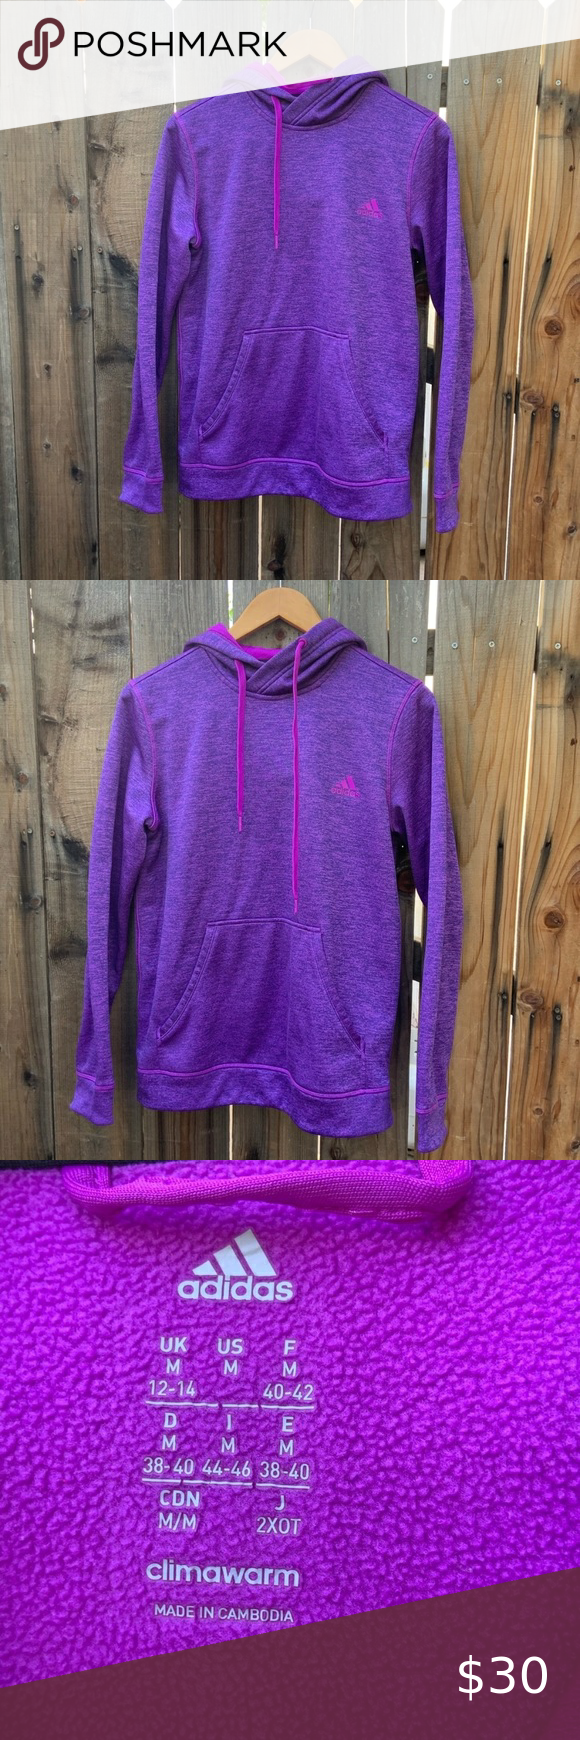 Purple Adidas Sweater With Hoodie Sz Medium Purple Adidas Sweater With Hoodie Size Medium Perfect Condition Feel Free To Ask Adidas Sweater Hoodies Sweaters [ 1740 x 580 Pixel ]